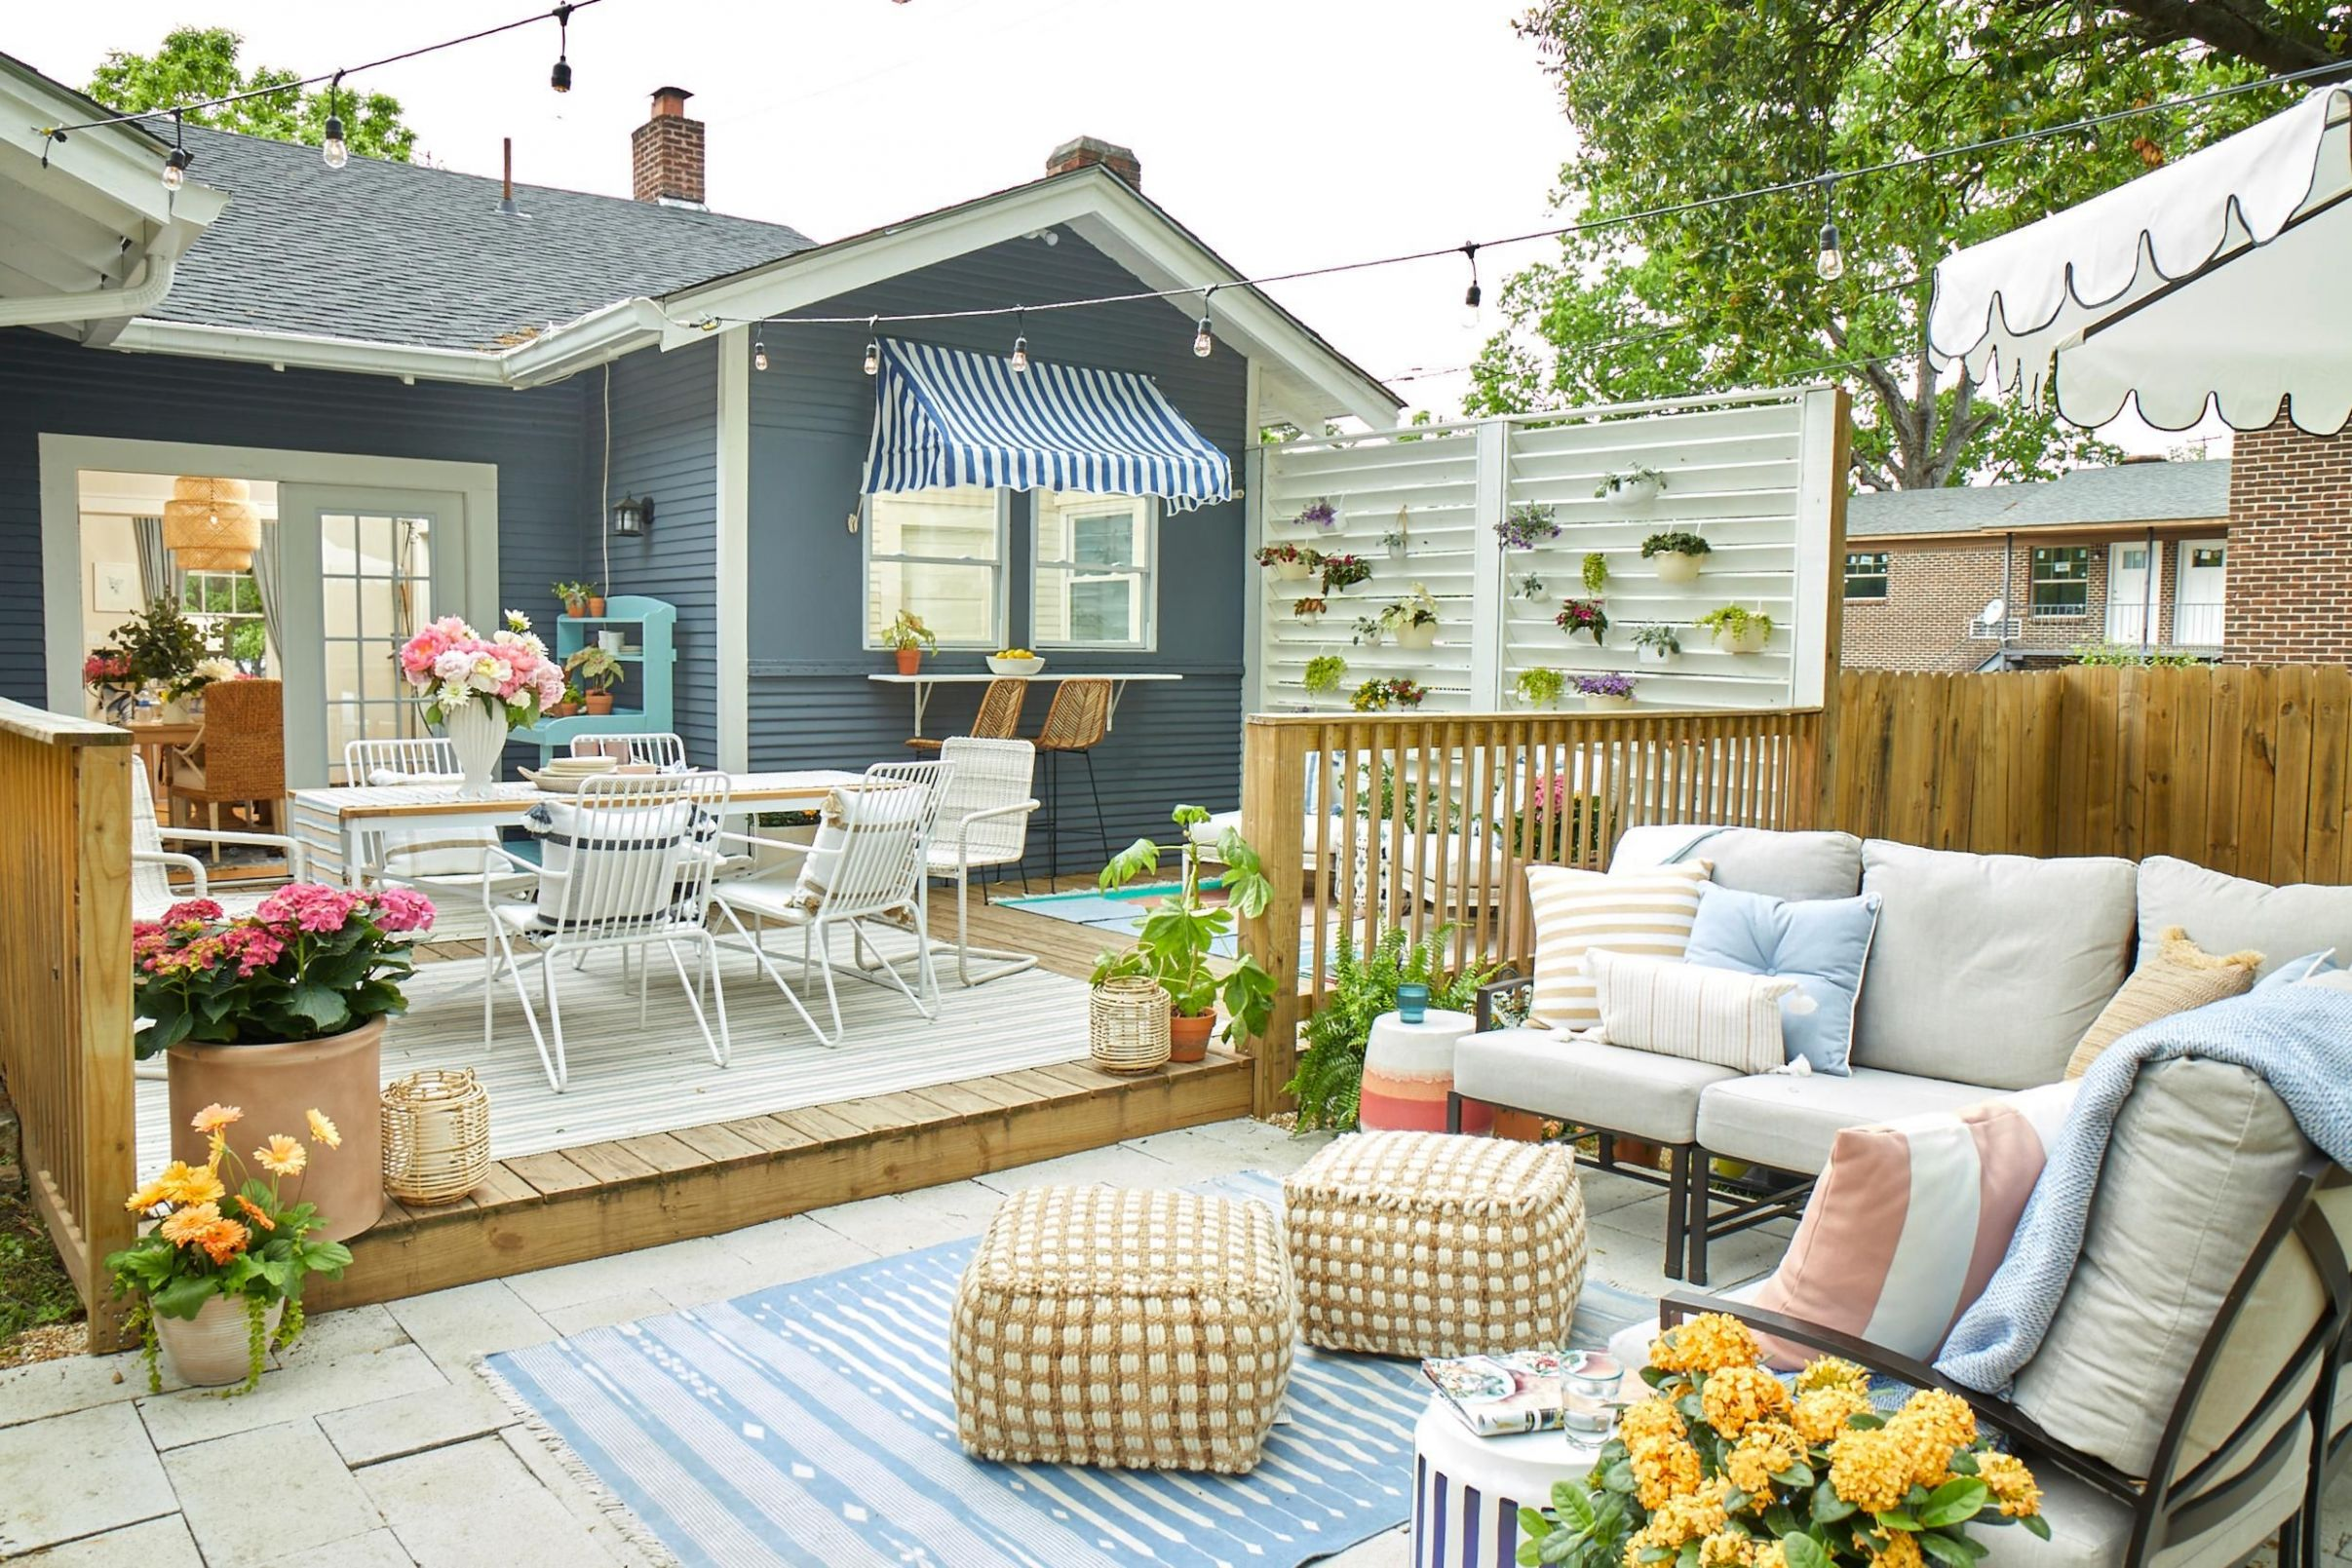 10 Best Patio and Porch Design Ideas - Decorating Your Outdoor Space - balcony terrace ideas